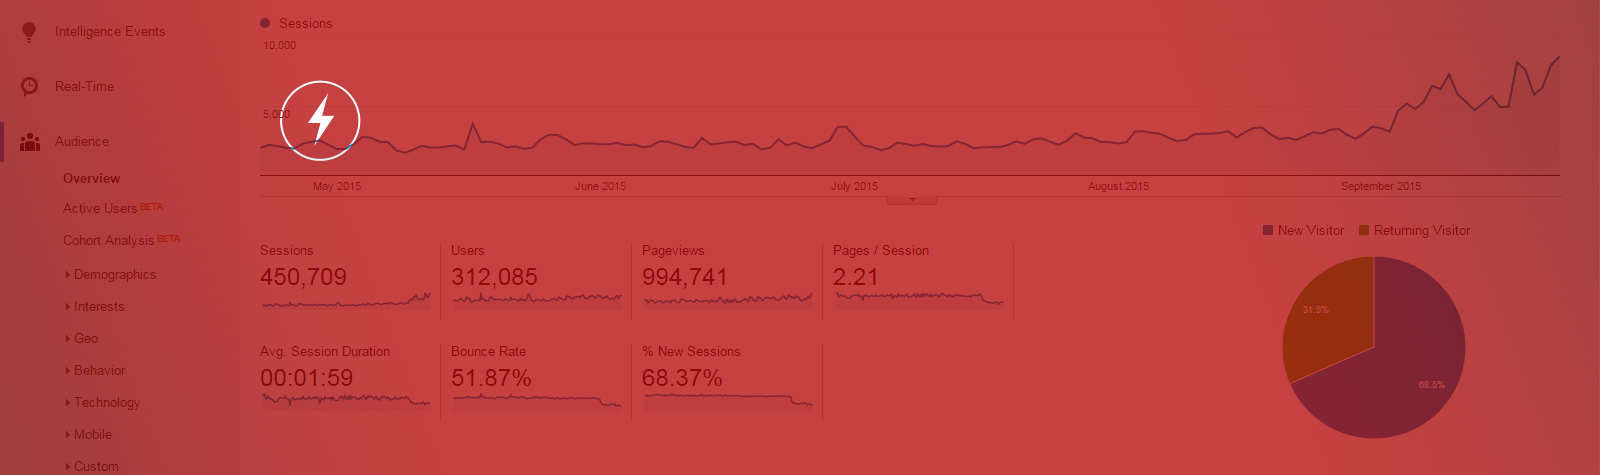 How to Easily Build a Powerful Dashboard in Google Analytics